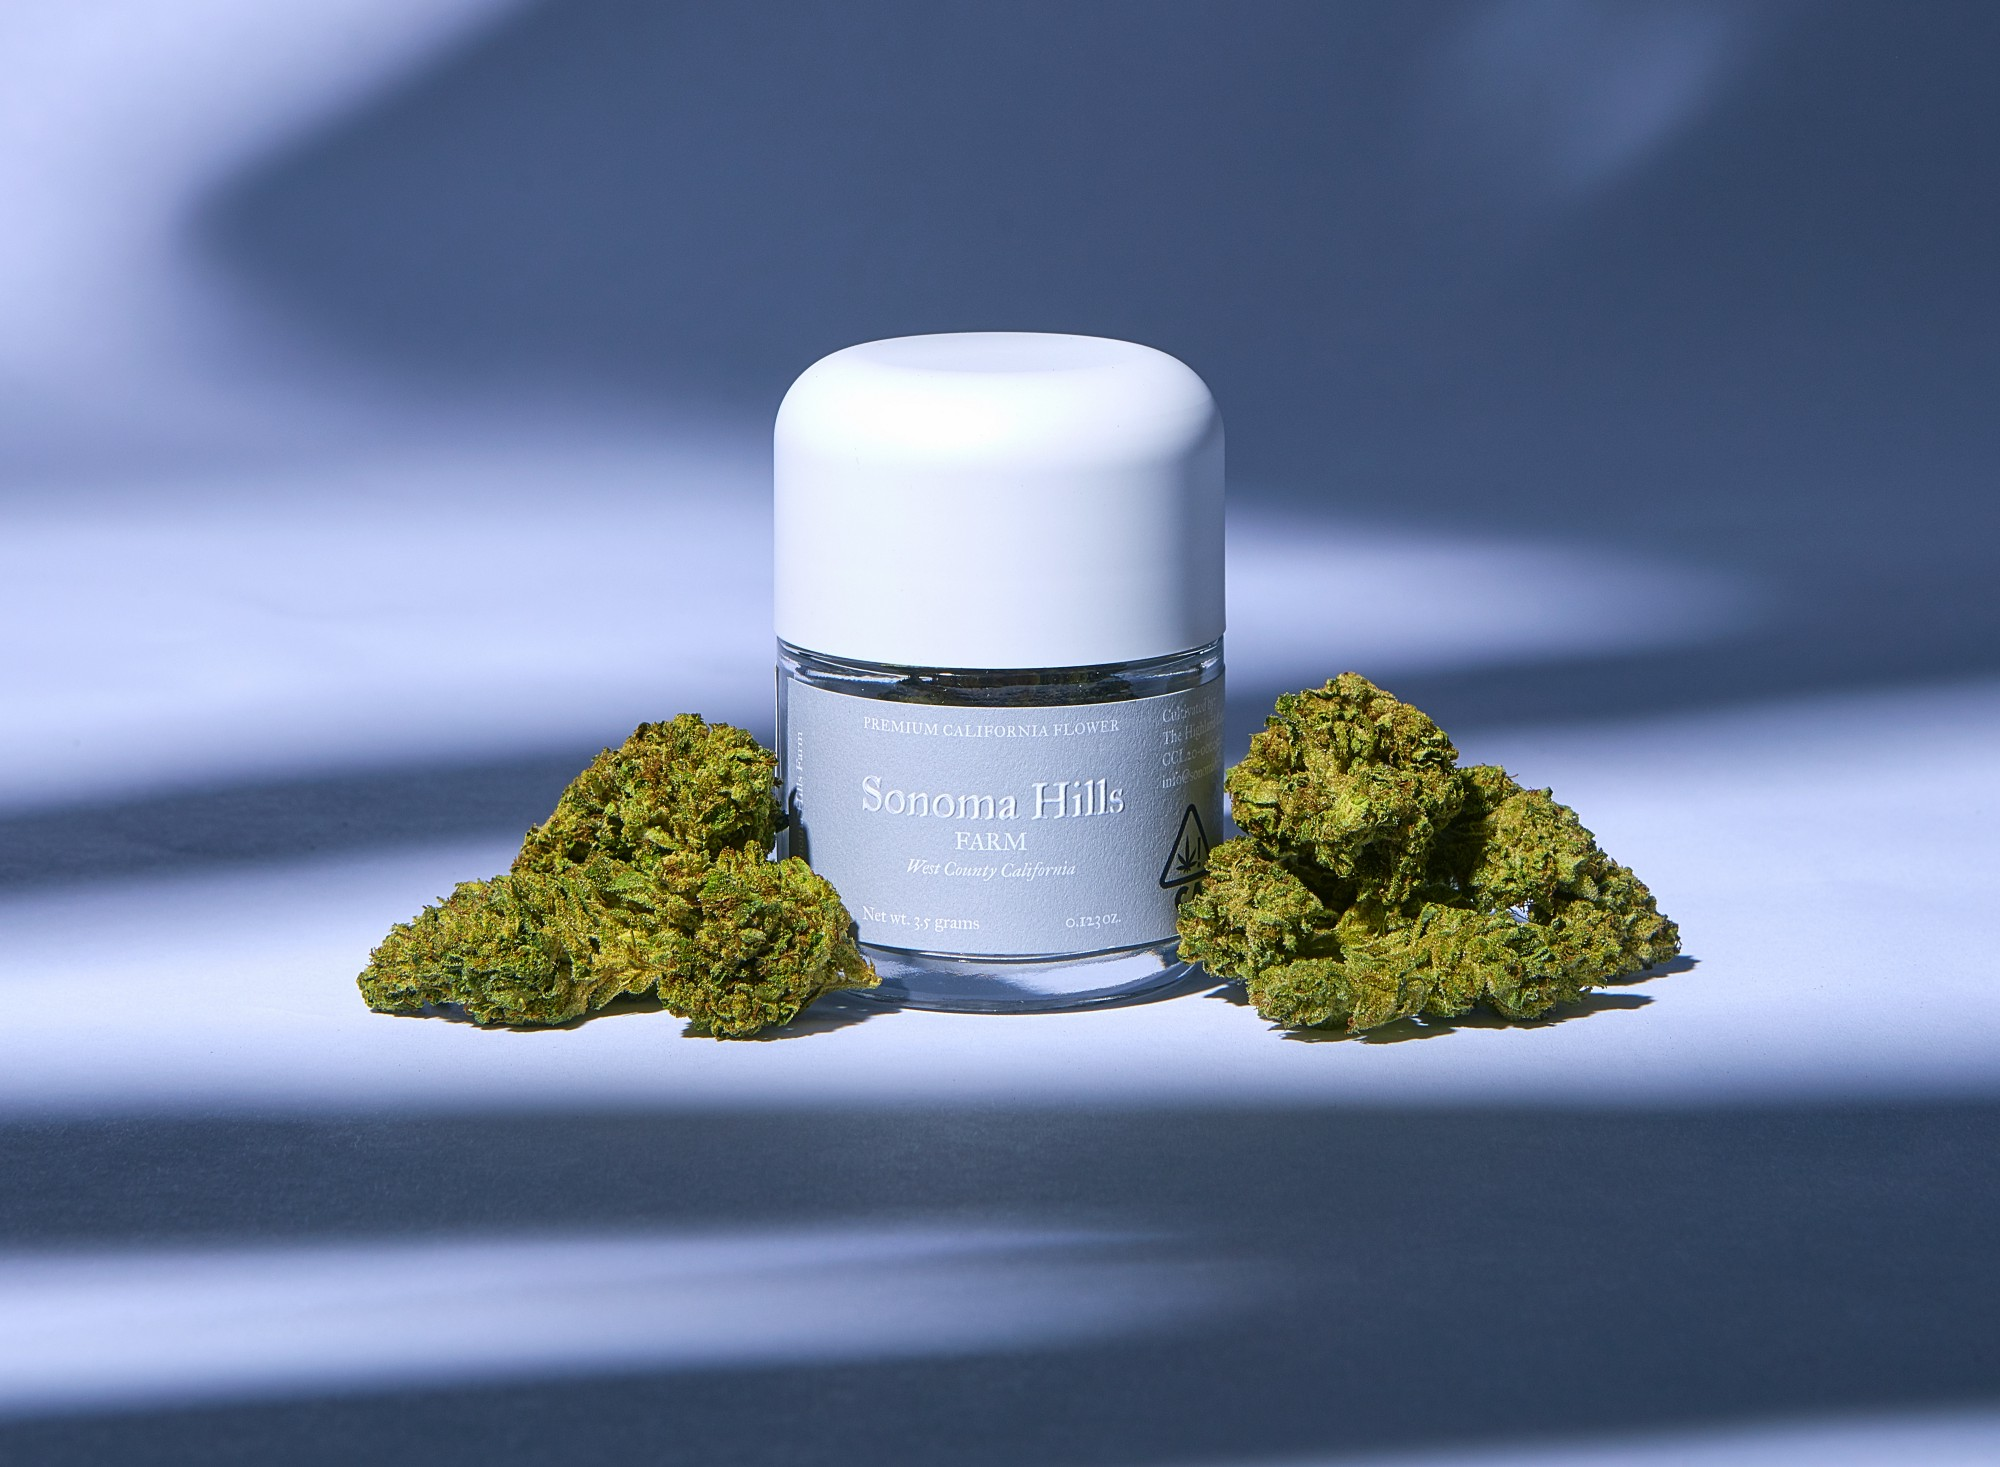 Jar with Sonoma Hills label on it with nugs of flower on either side.